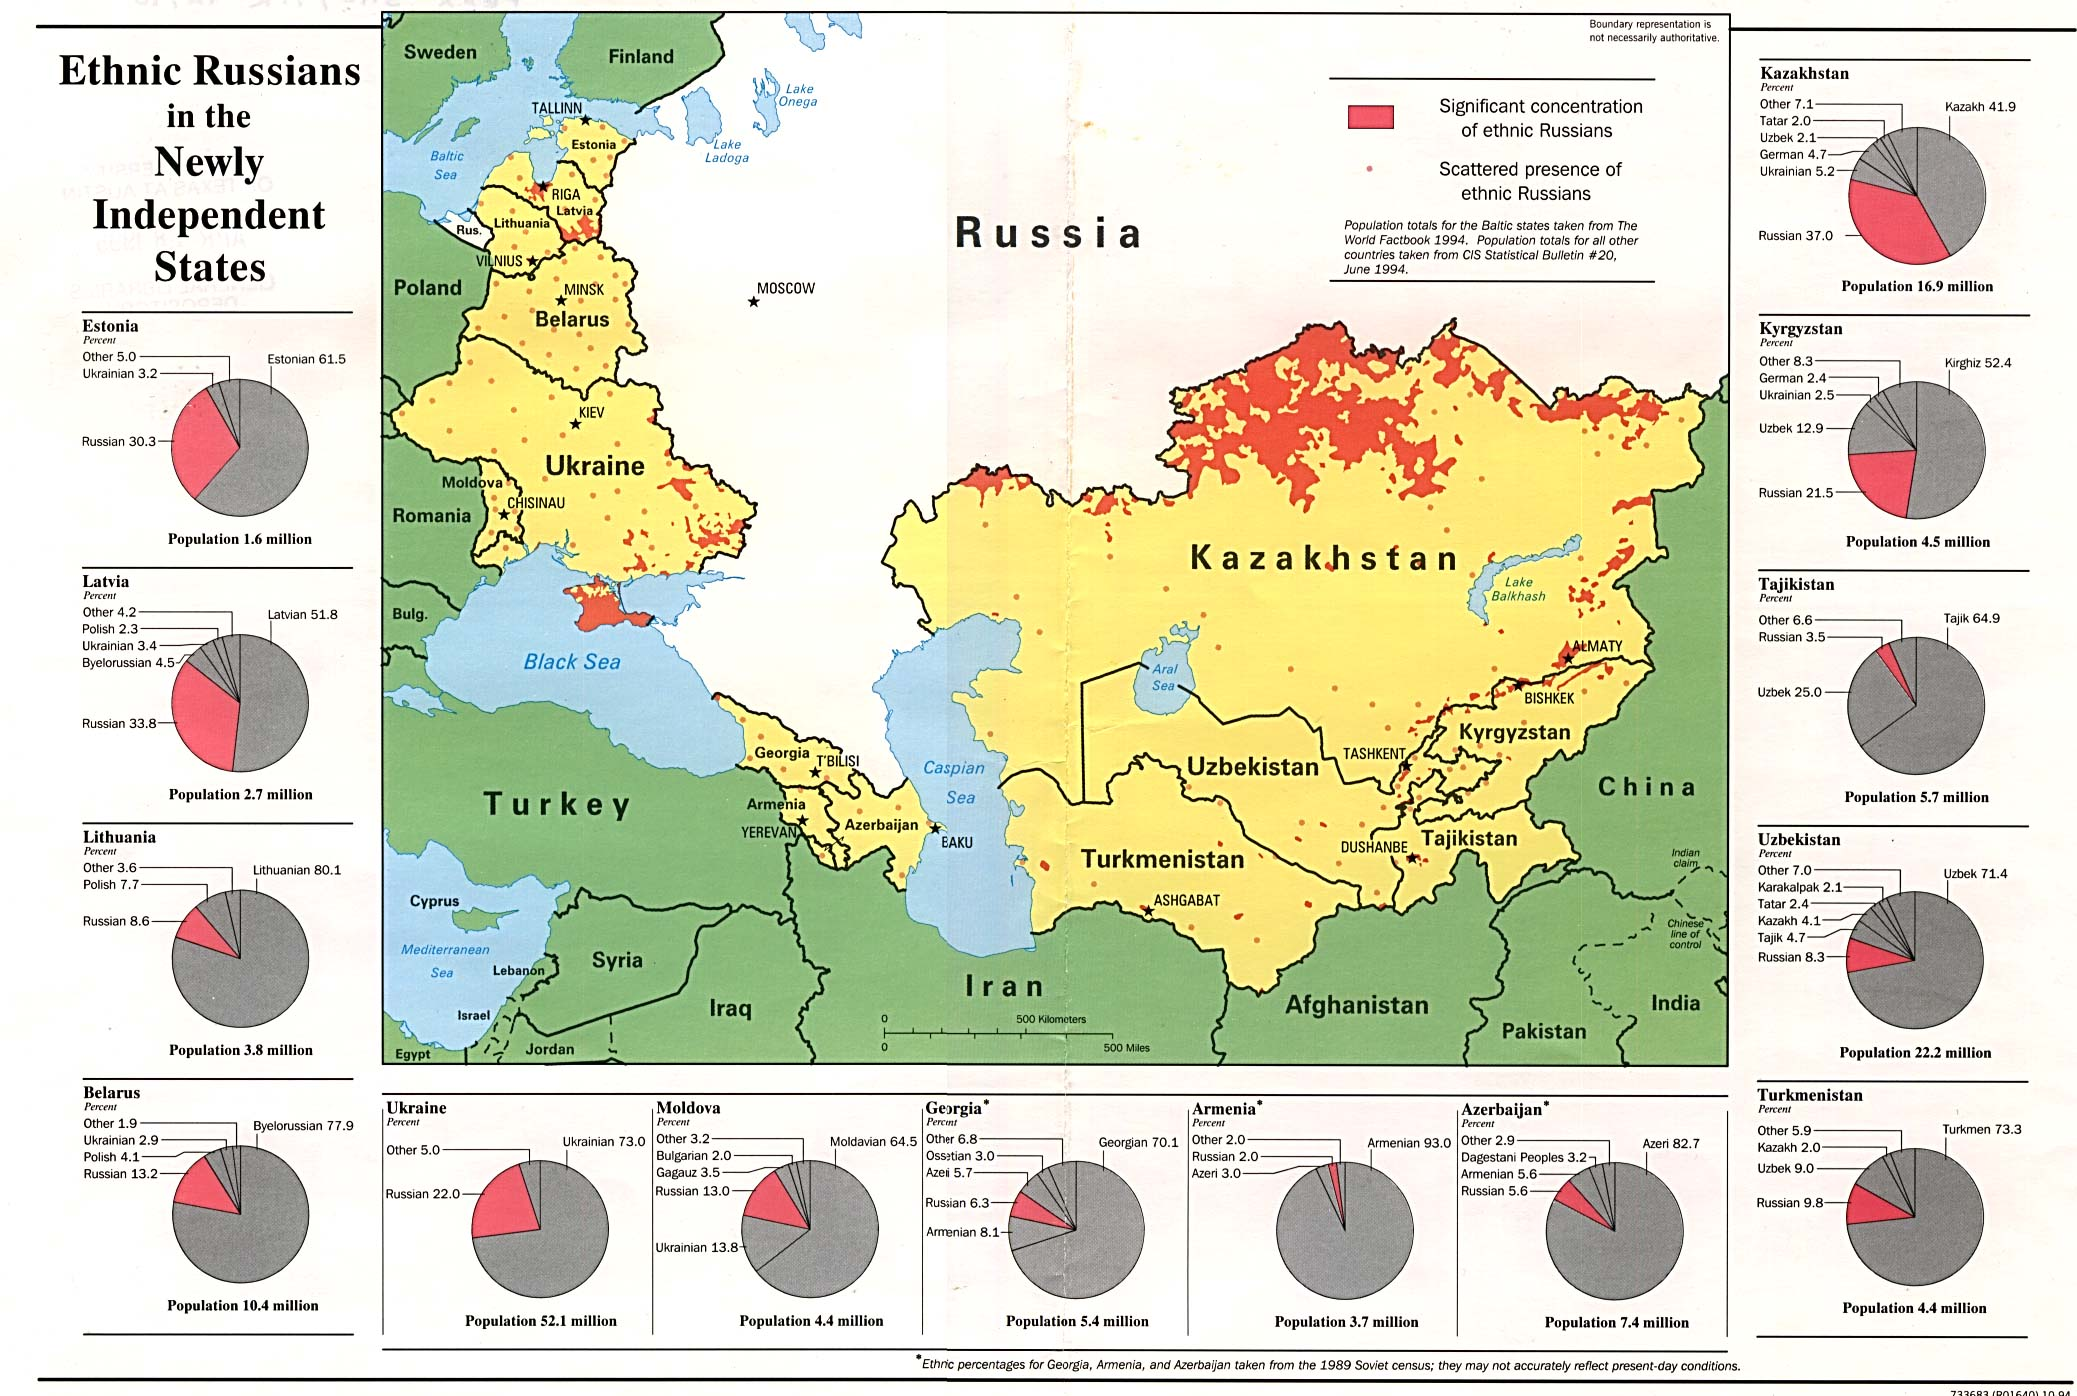 Ethnic Russians in Former